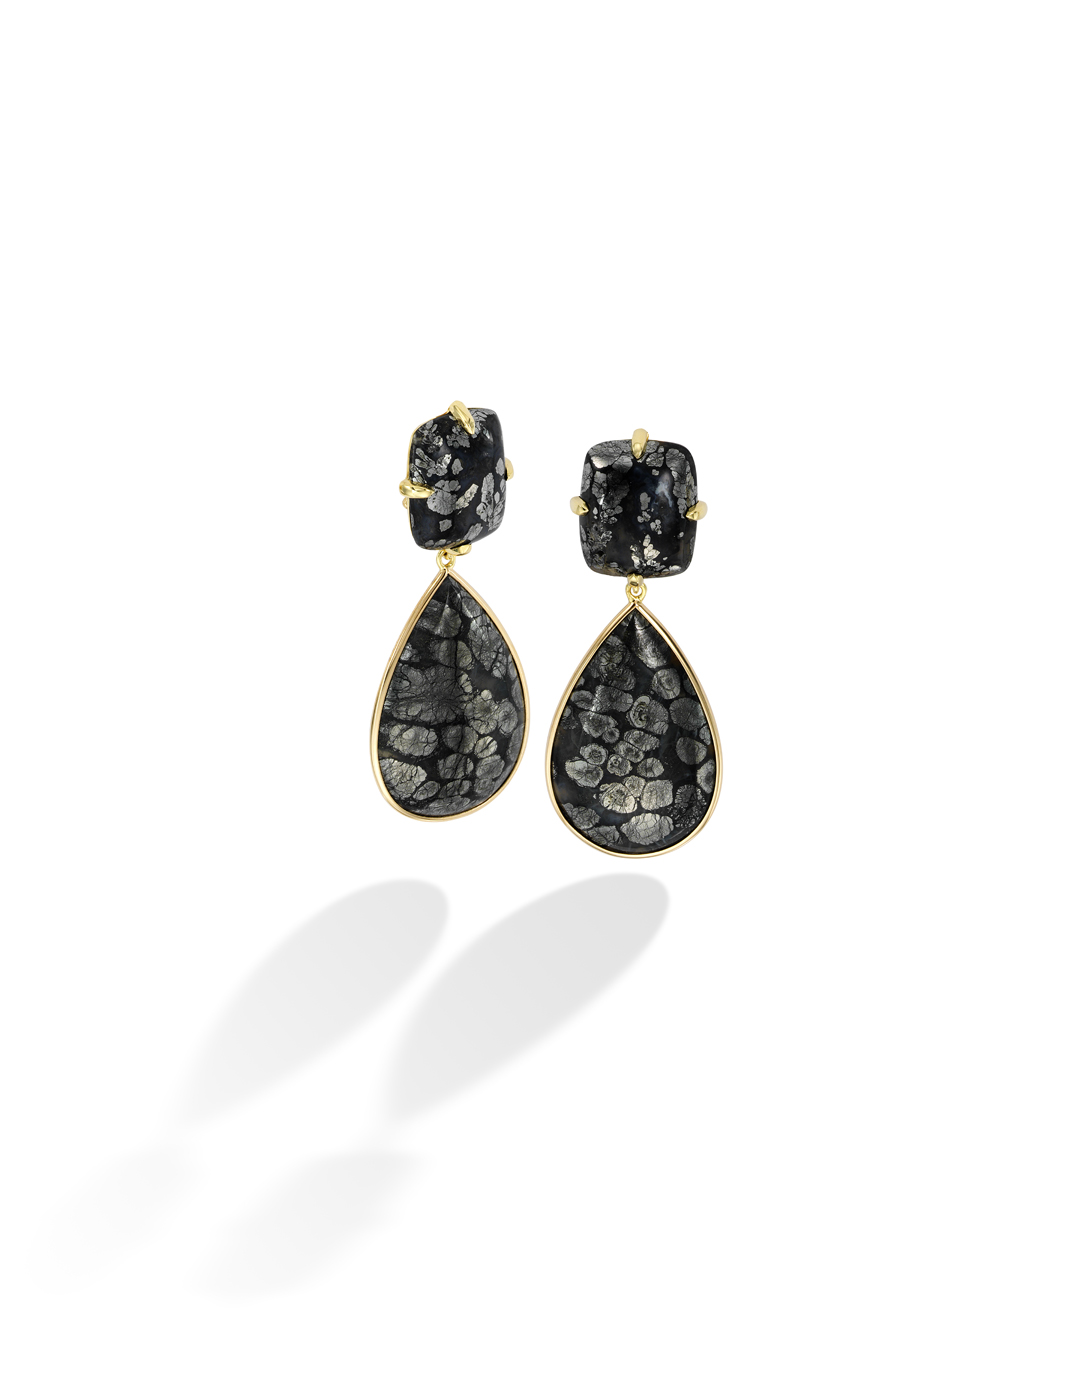 mish_products_earrings_Roadster-Marcasite-ER-1